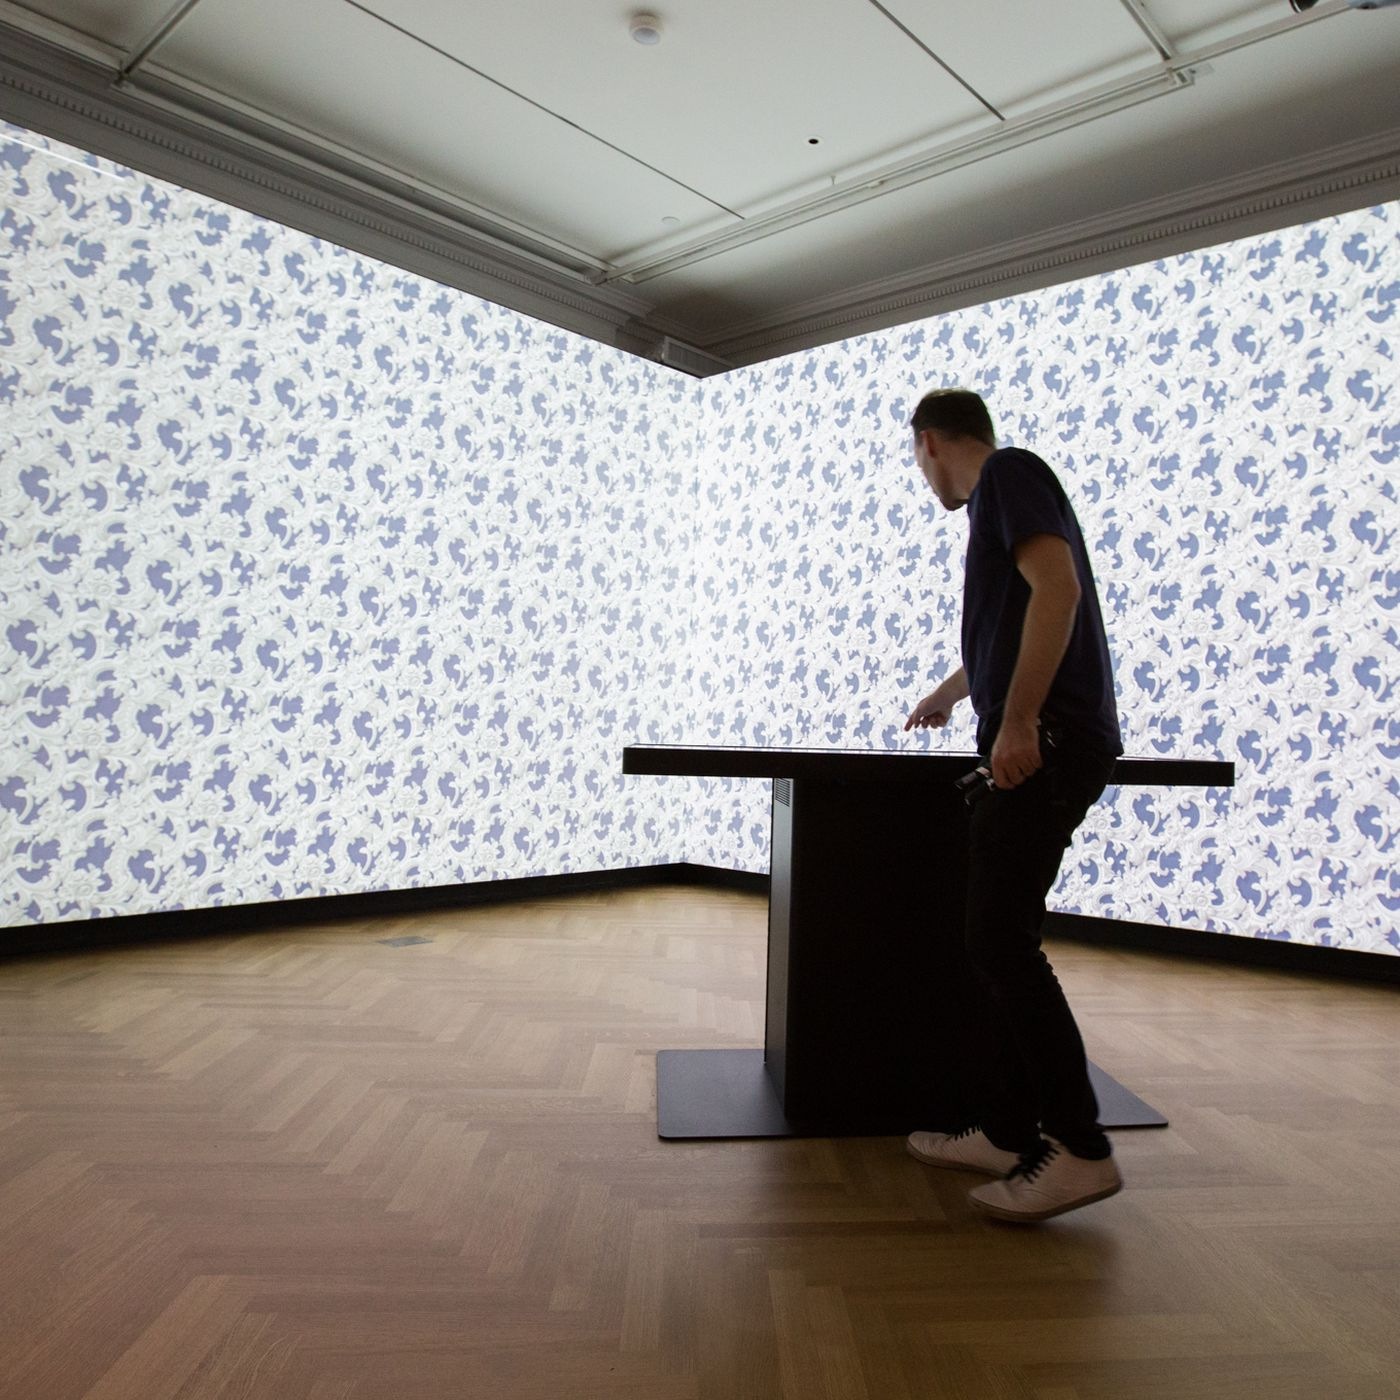 The Smithsonian's design museum just got some high-tech